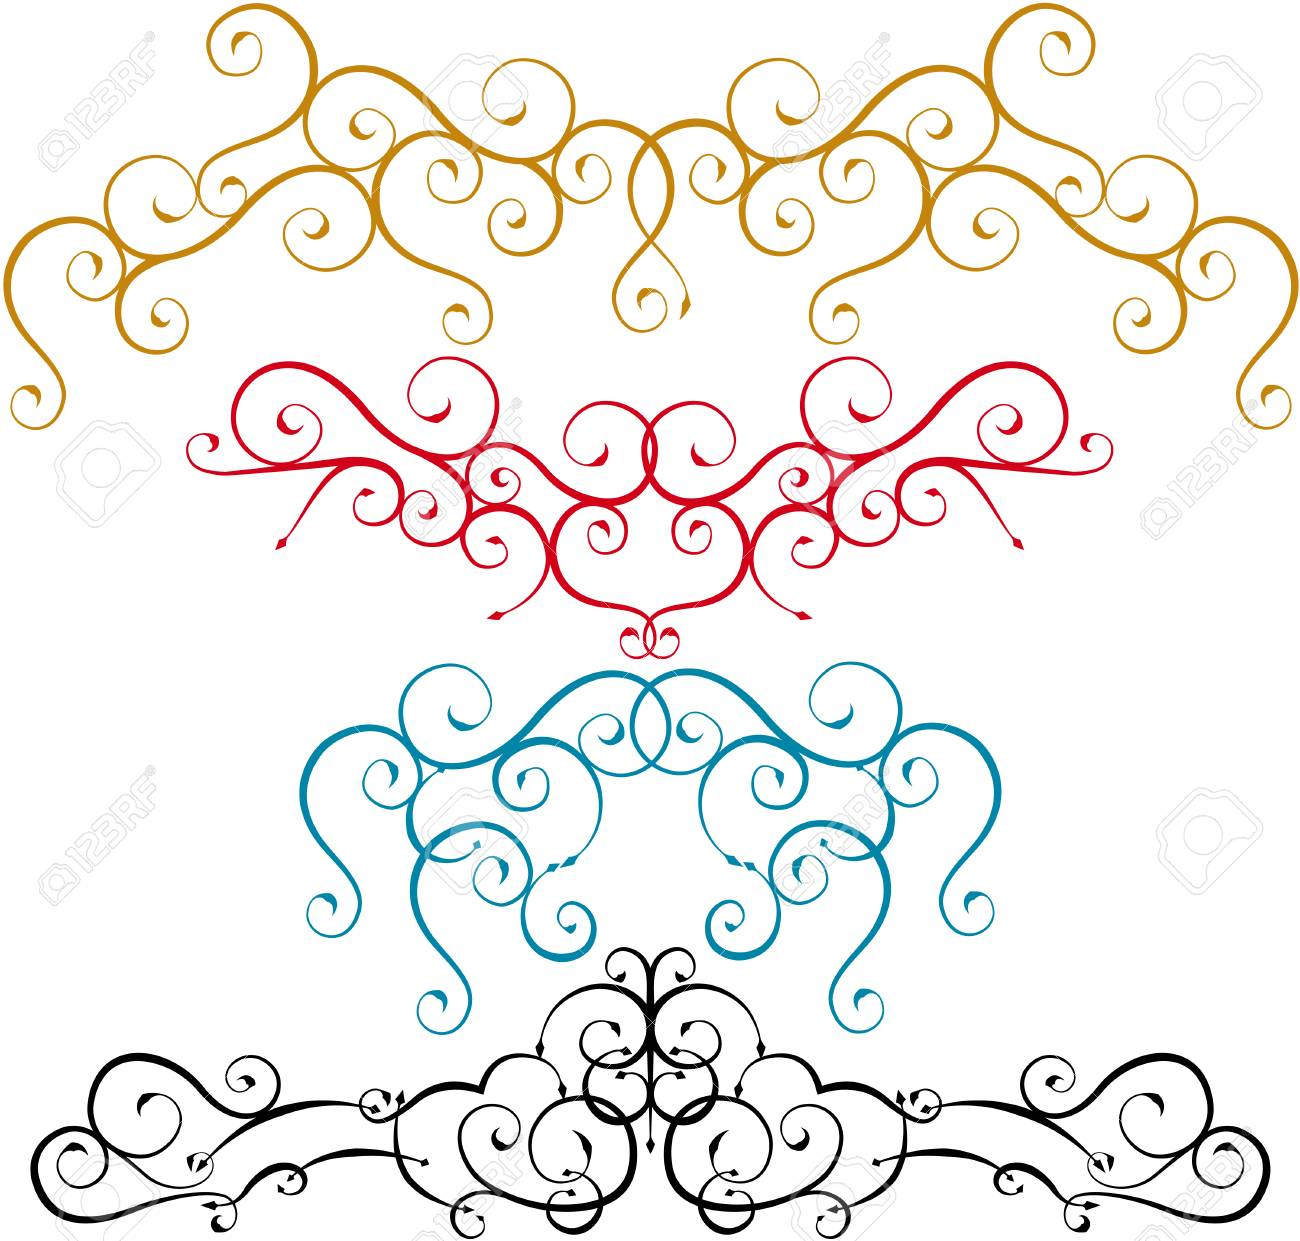 curves in combination Stock Vector - 5686314